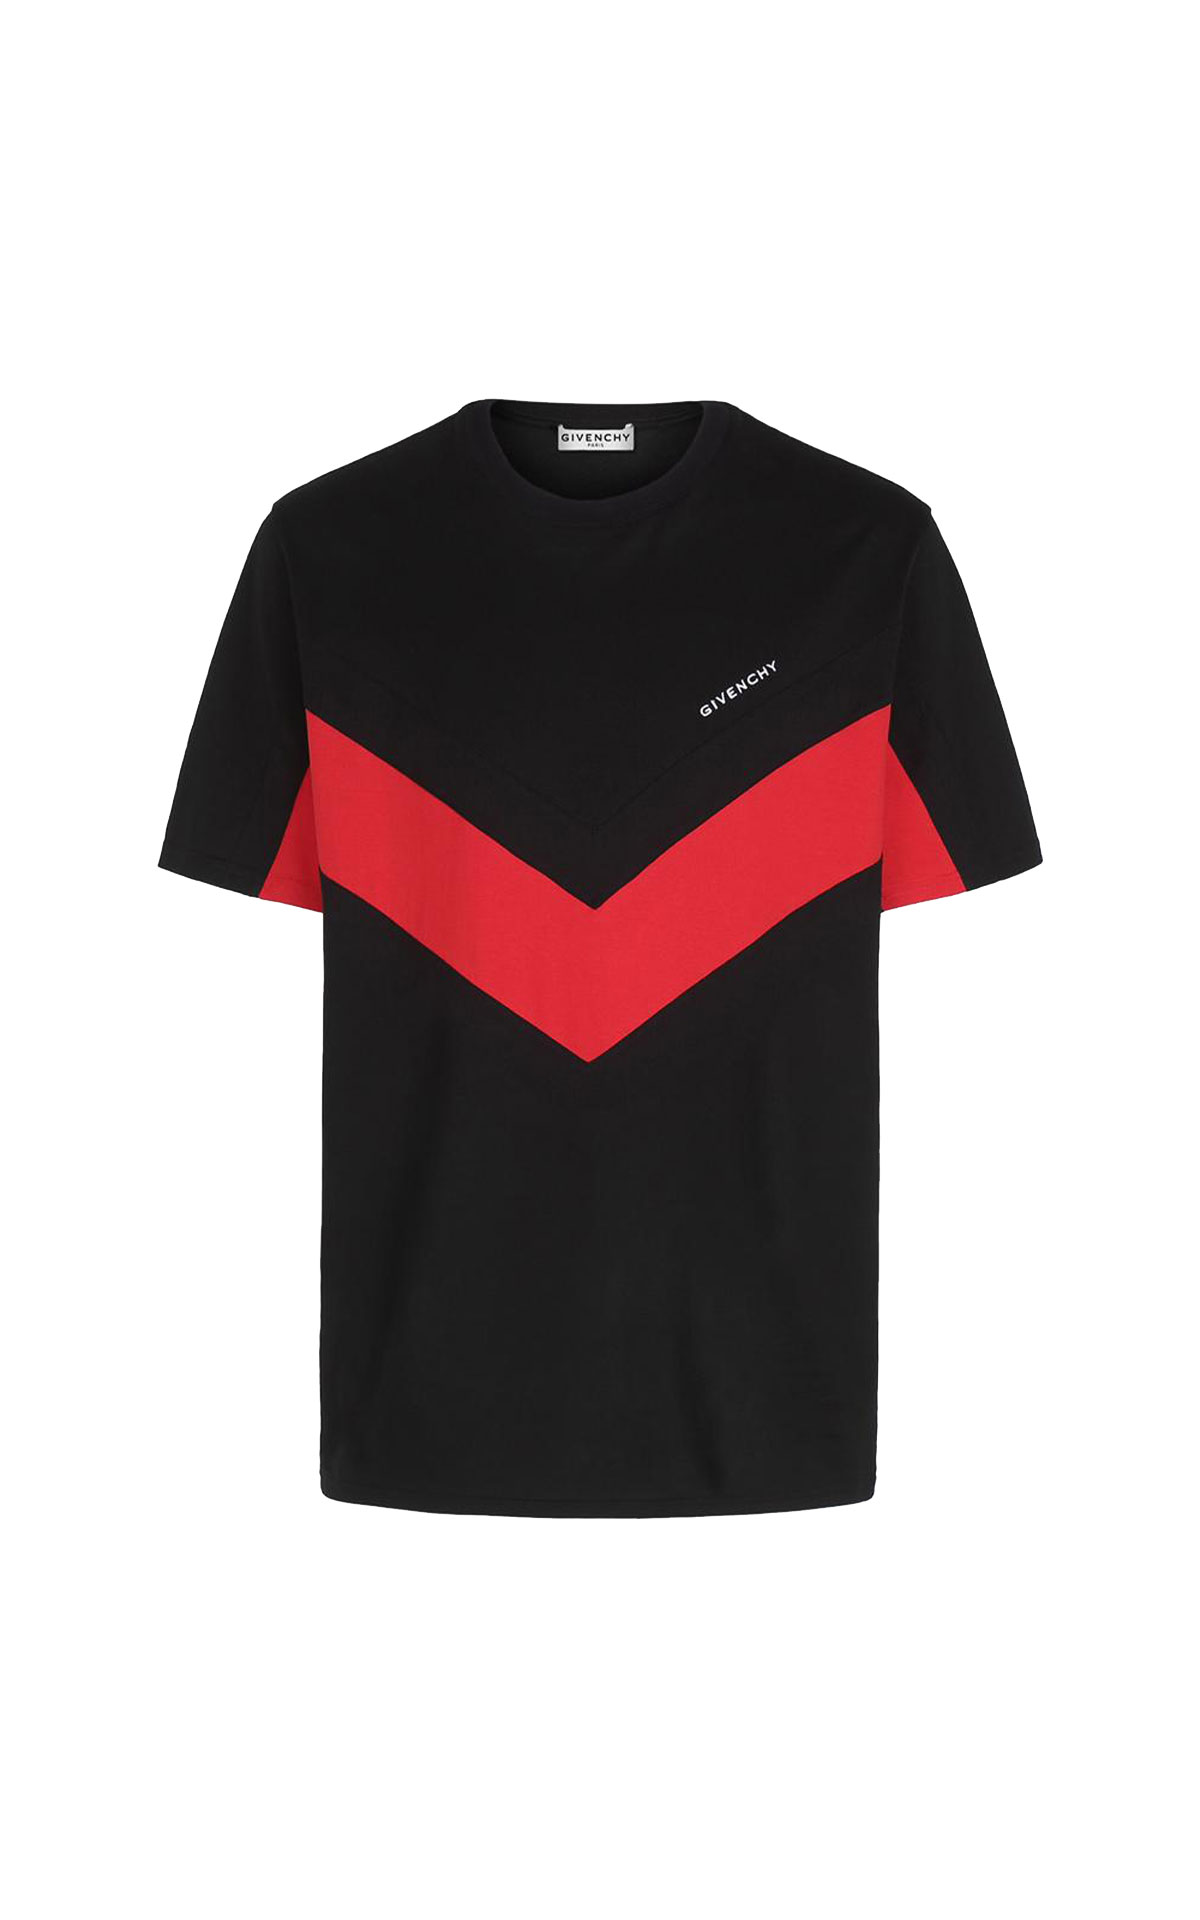 Givenchy Red and black t-shirt from Bicester Village